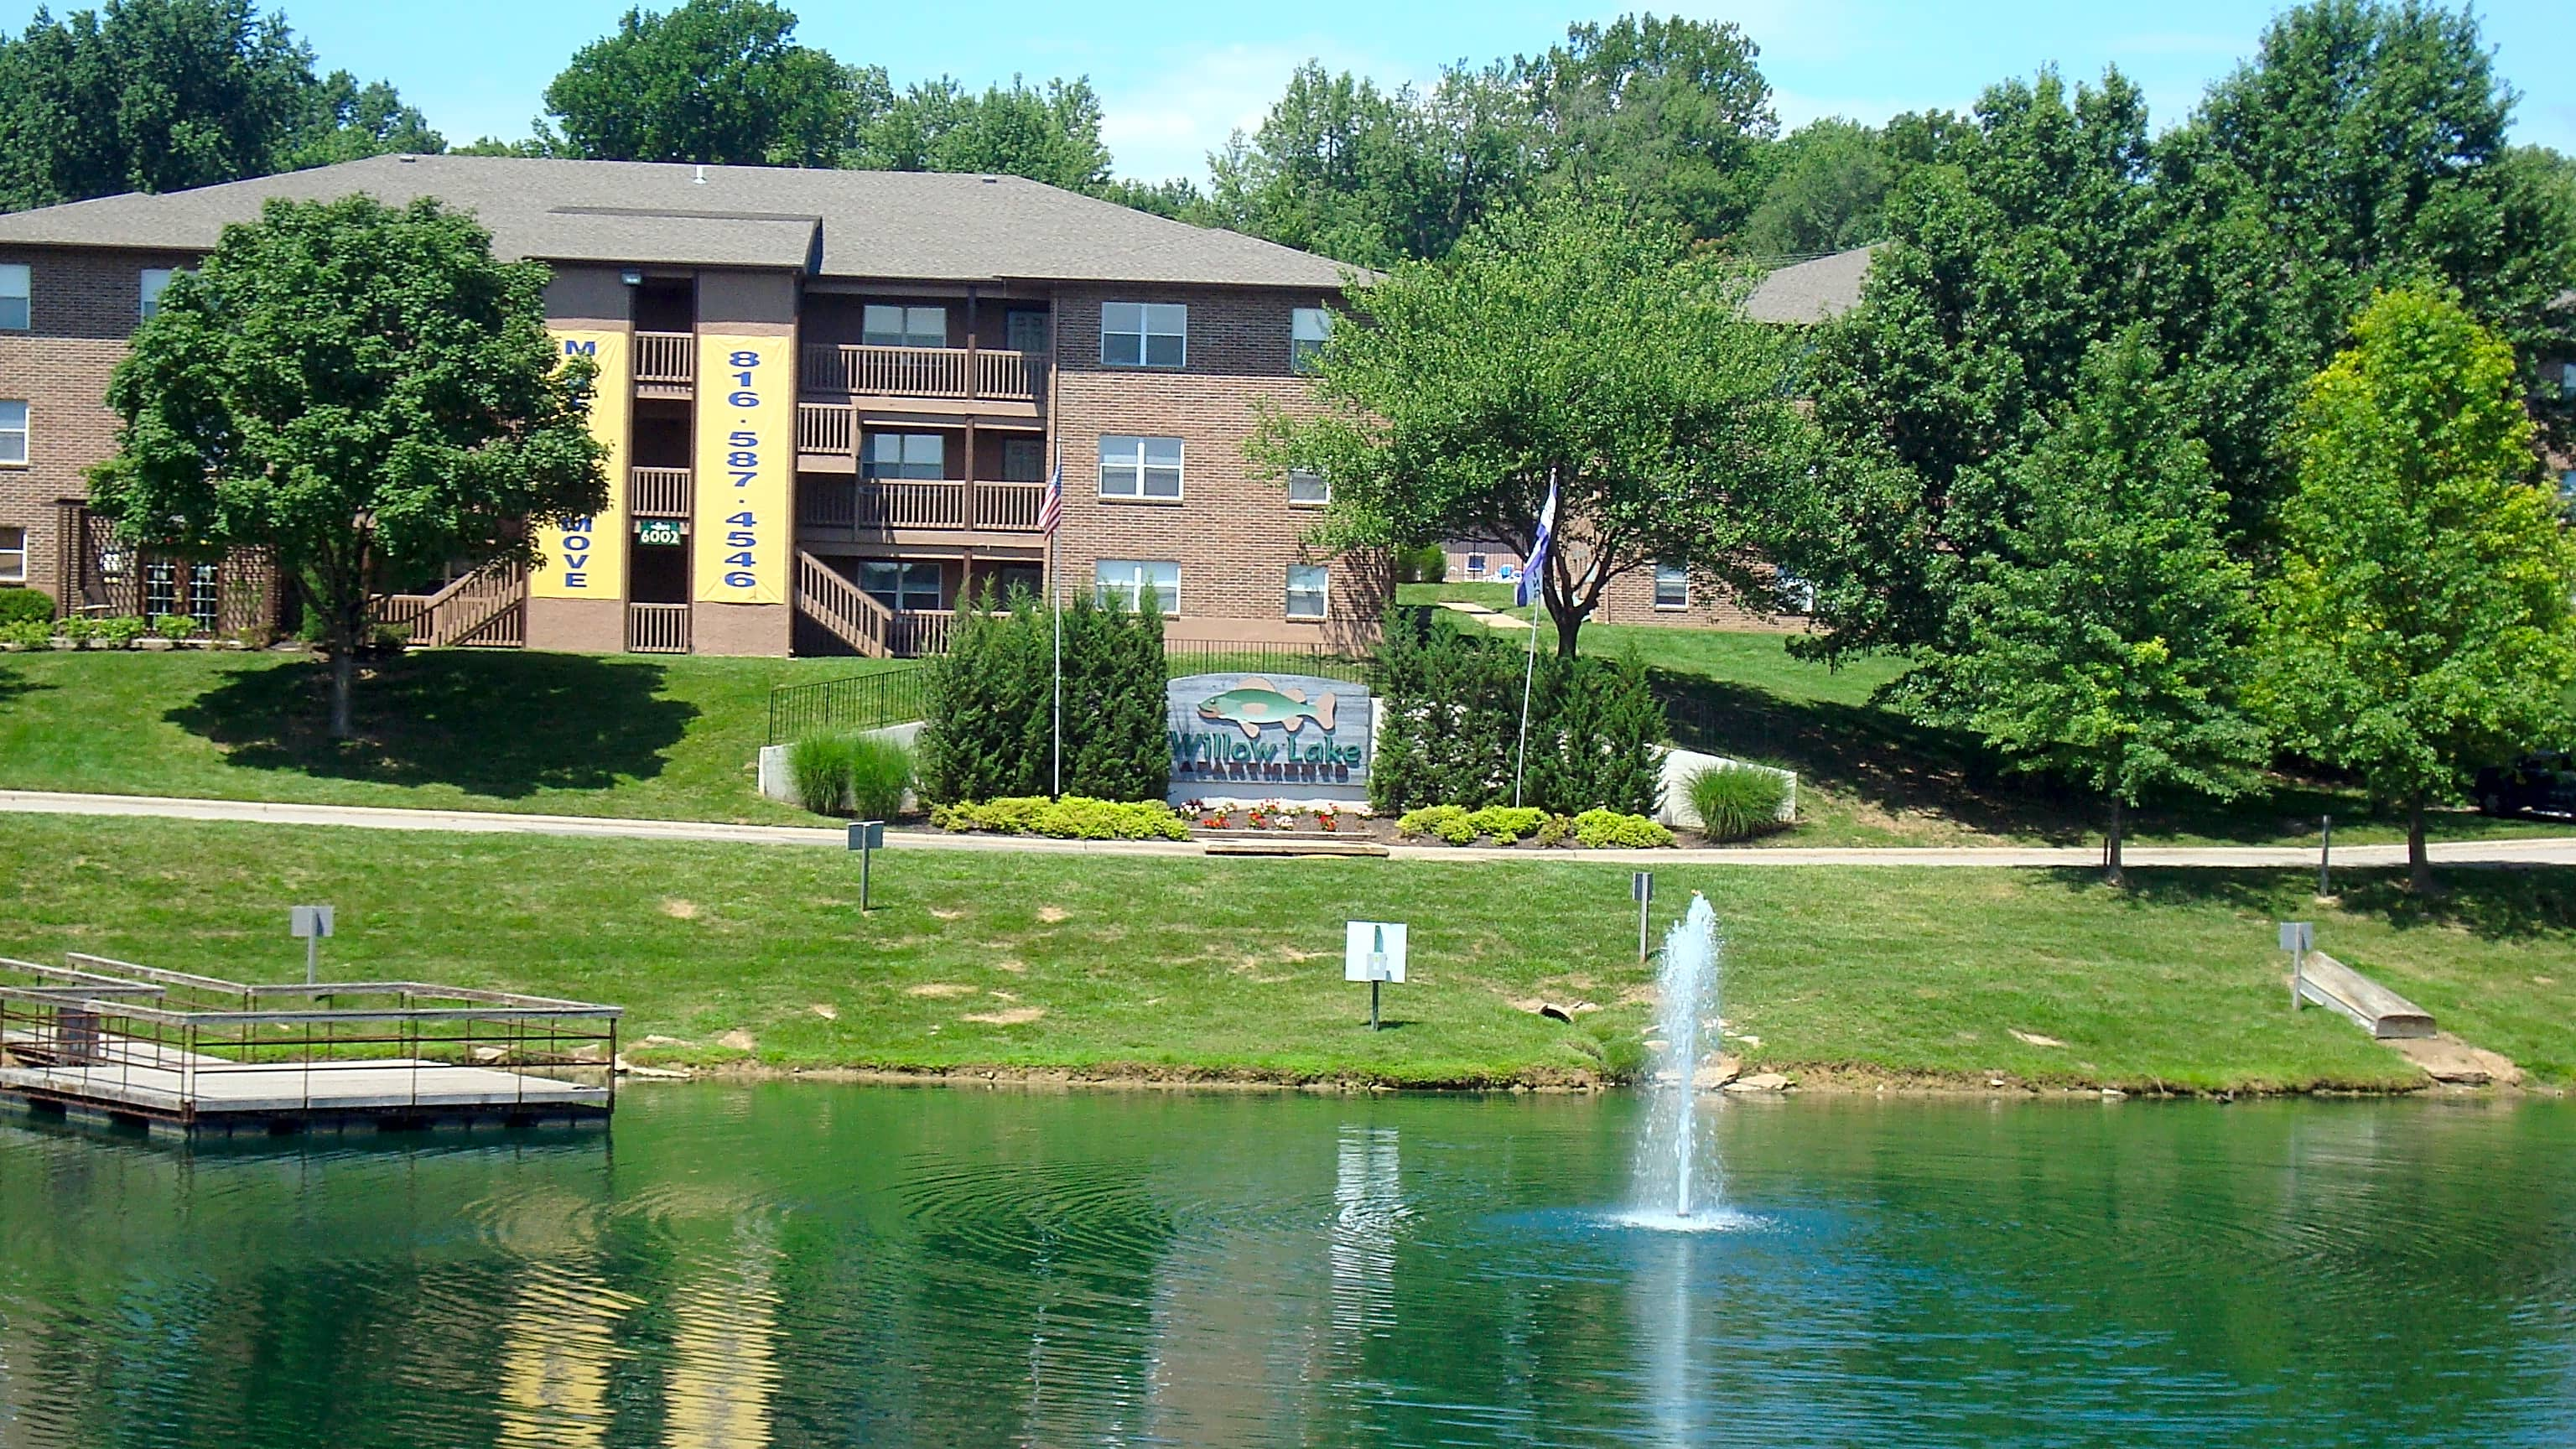 Apartments Near Park Willow Lake Apartments for Park University Students in Parkville, MO